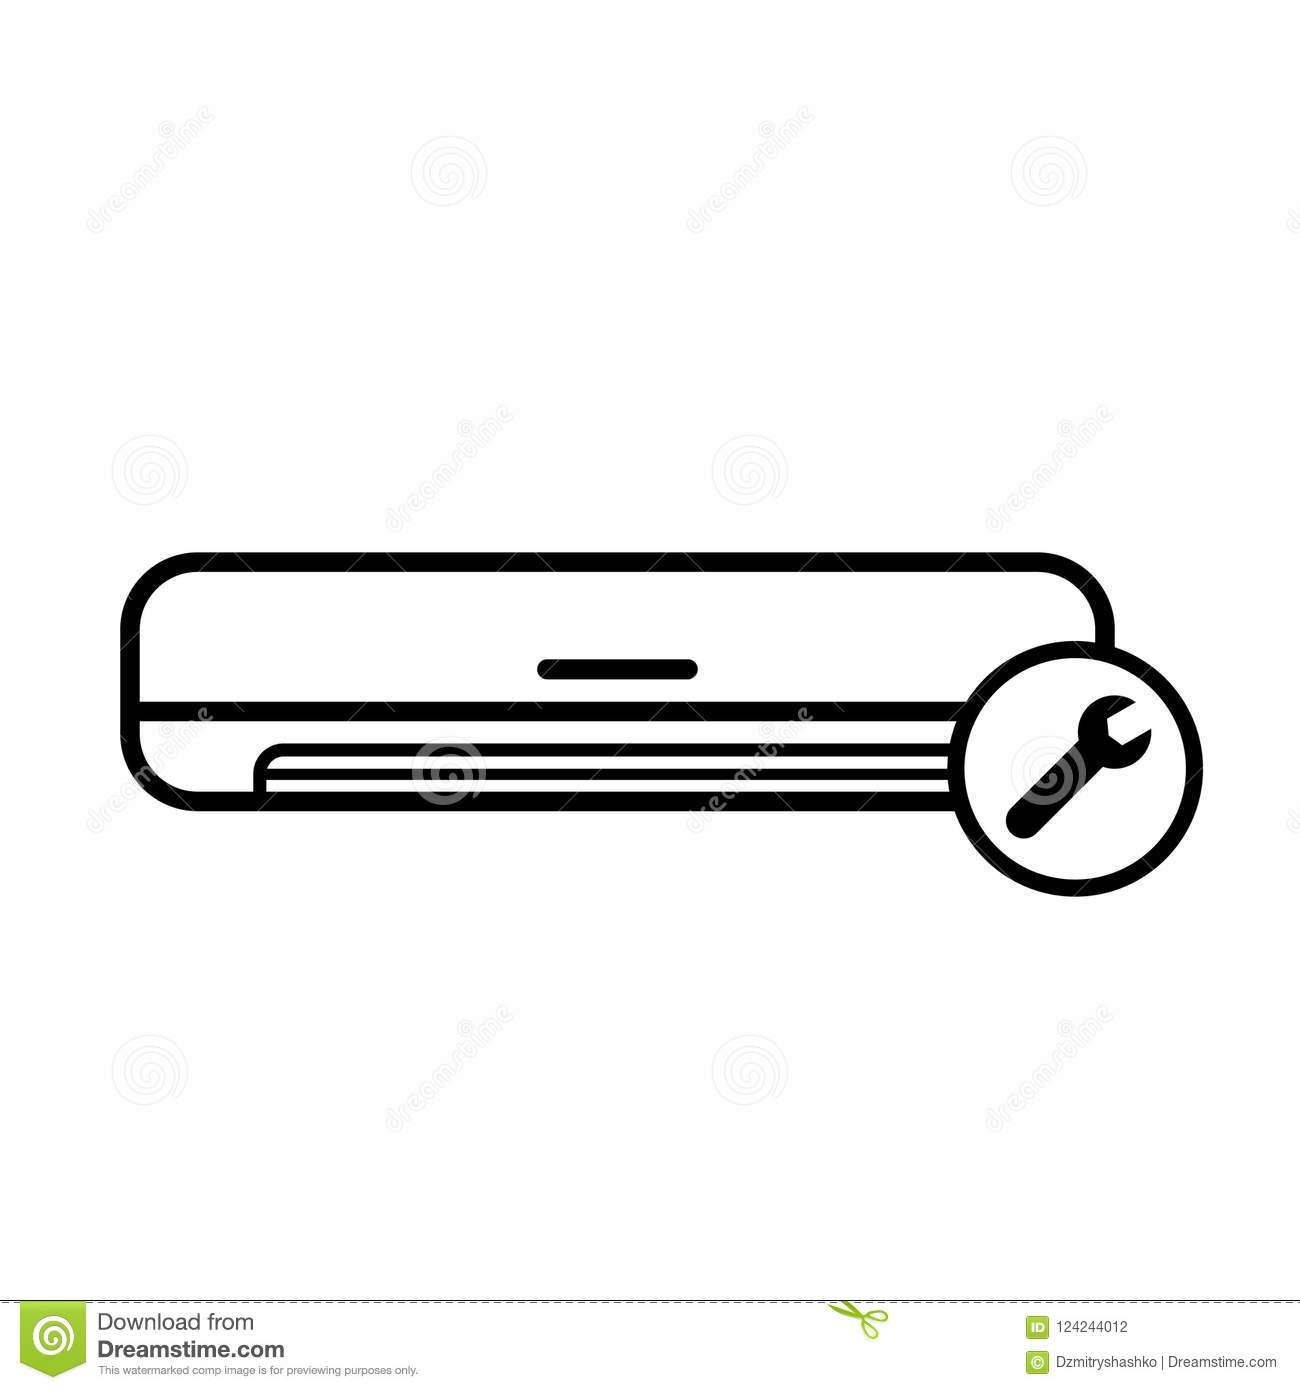 air conditioner repair icon stock vector illustration of cleaning